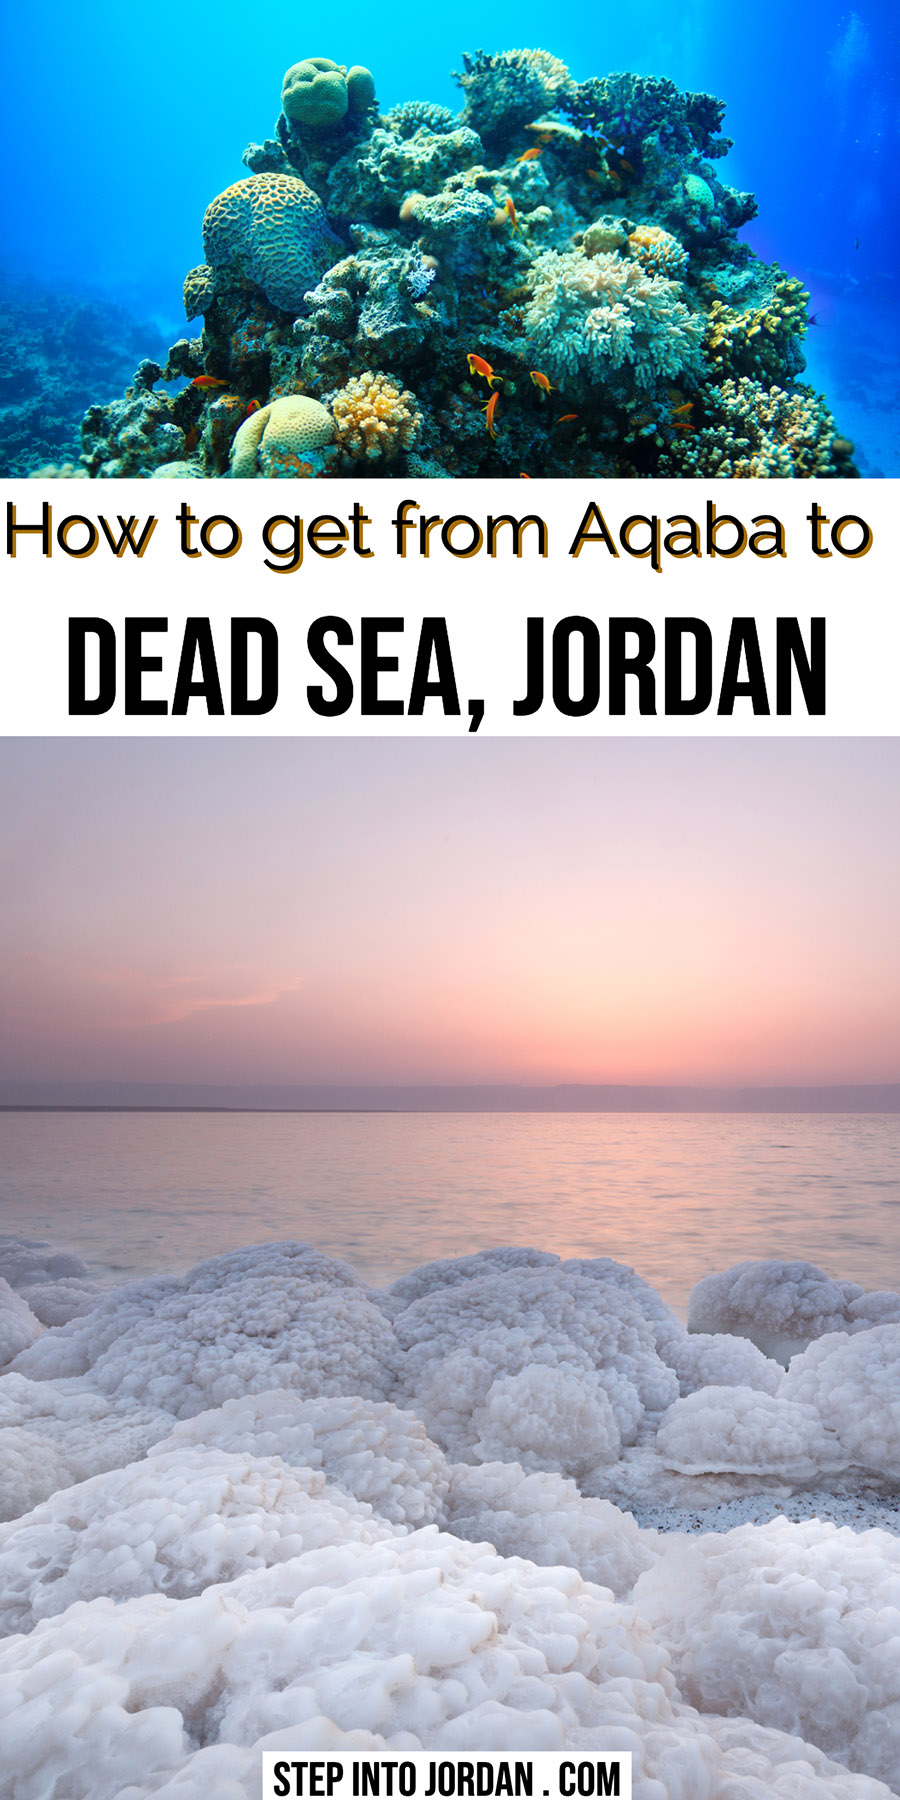 Aqaba to Dead Sea